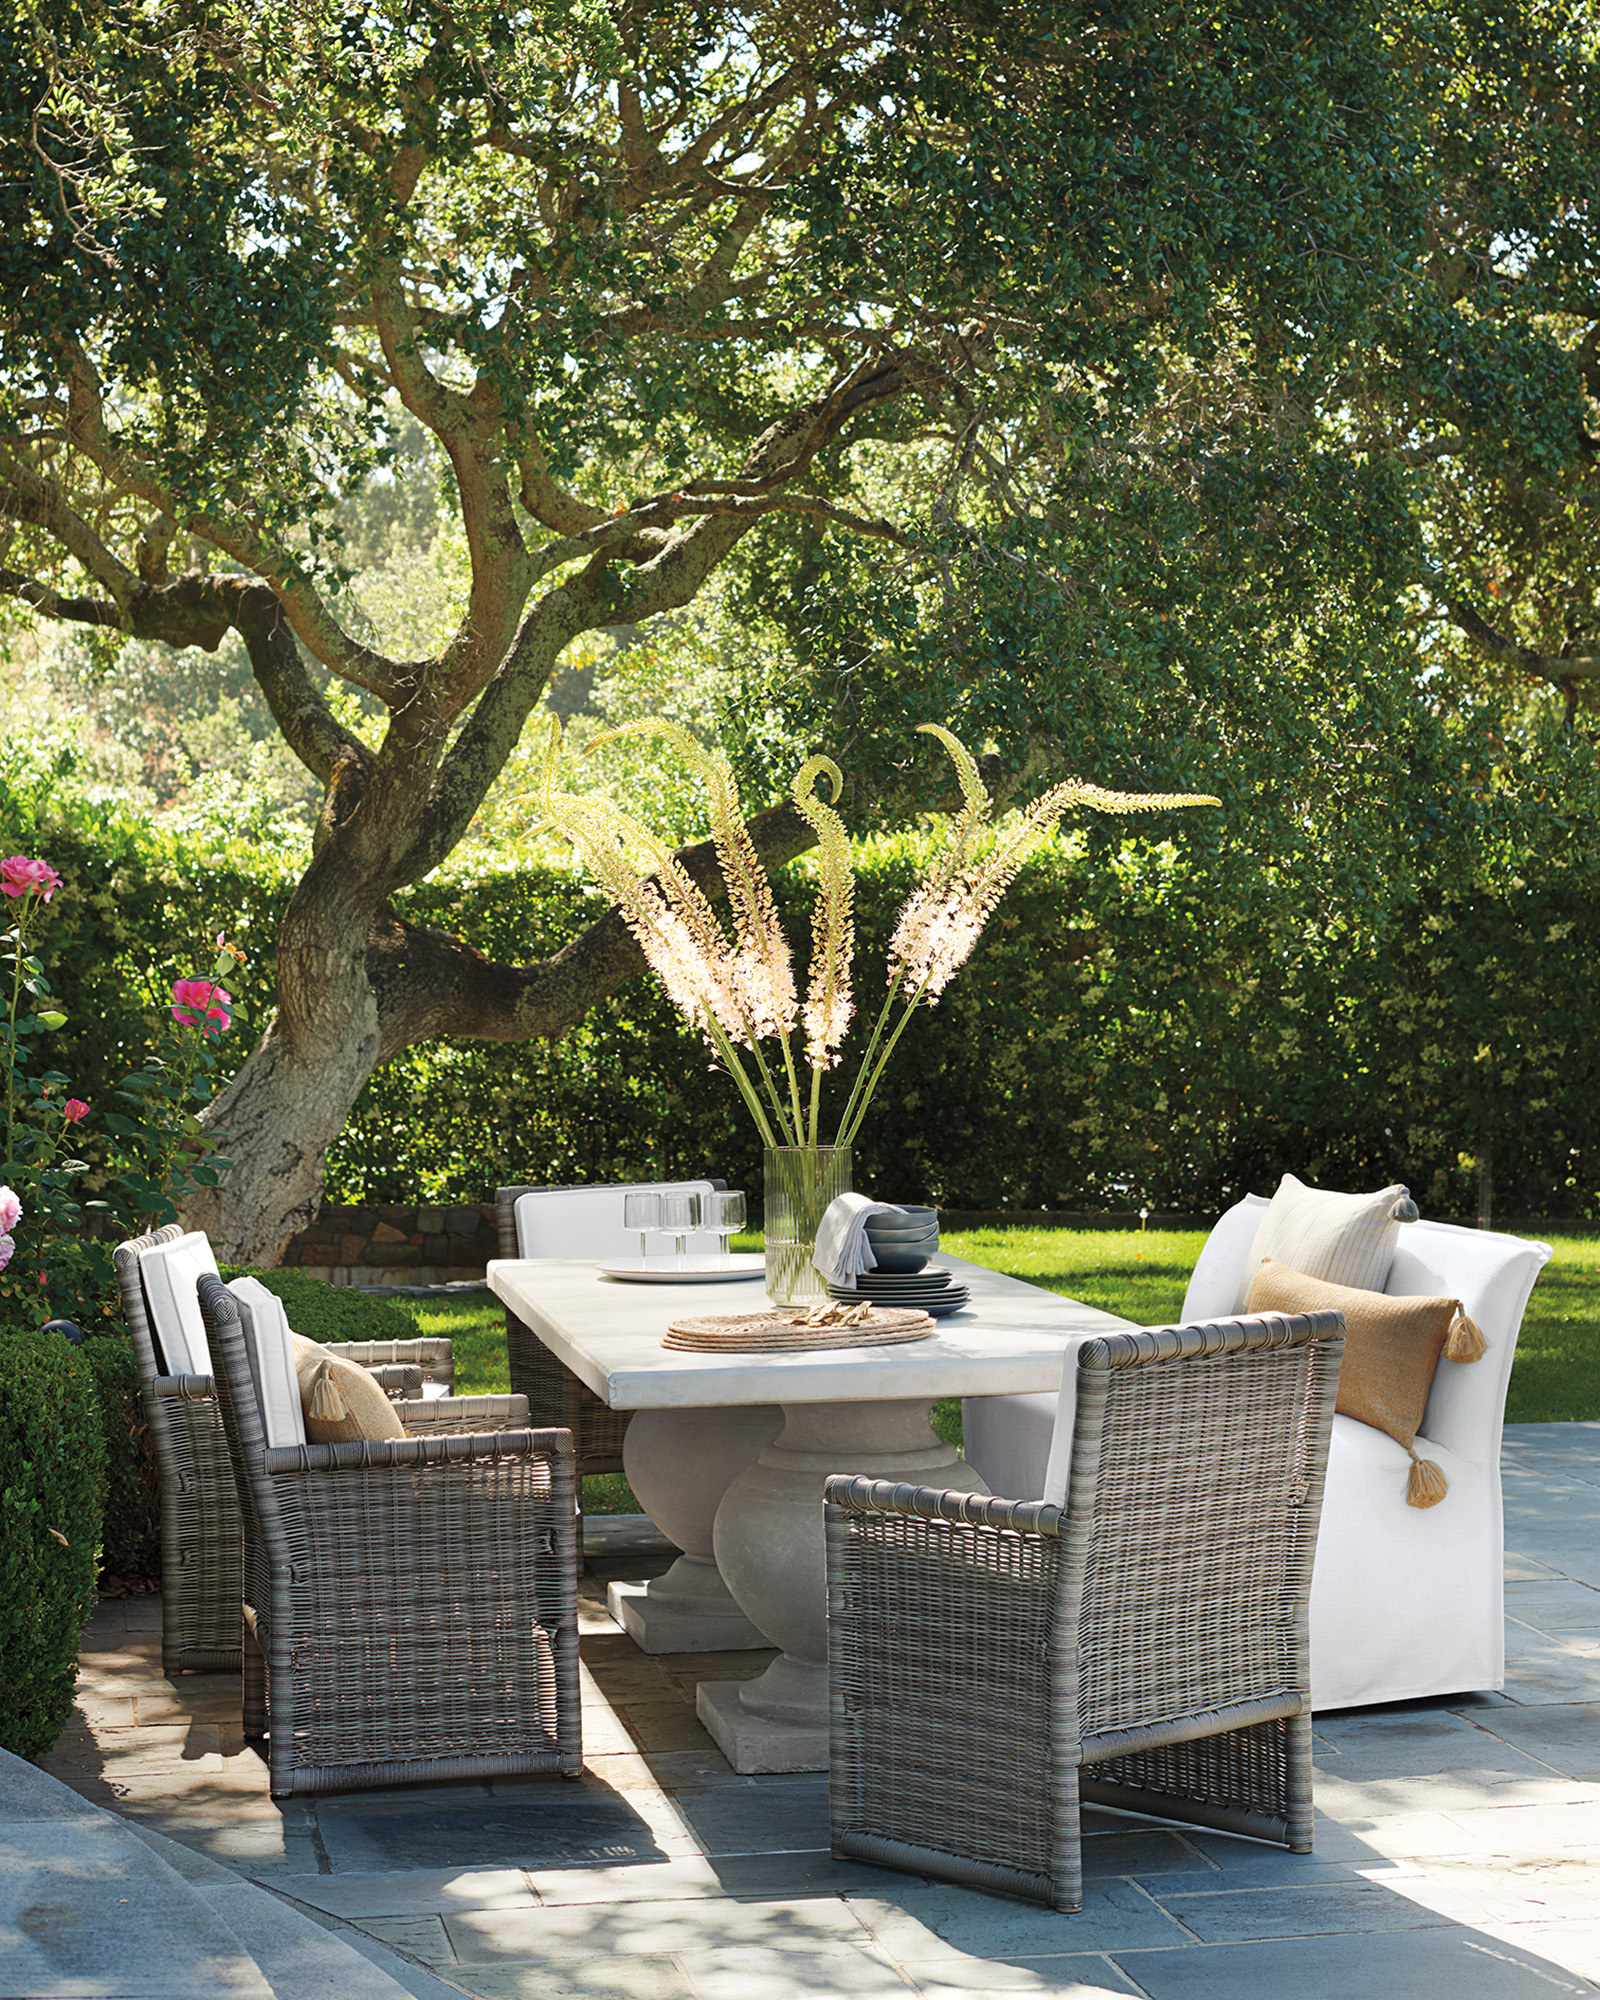 Sundial Outdoor Dining Bench,